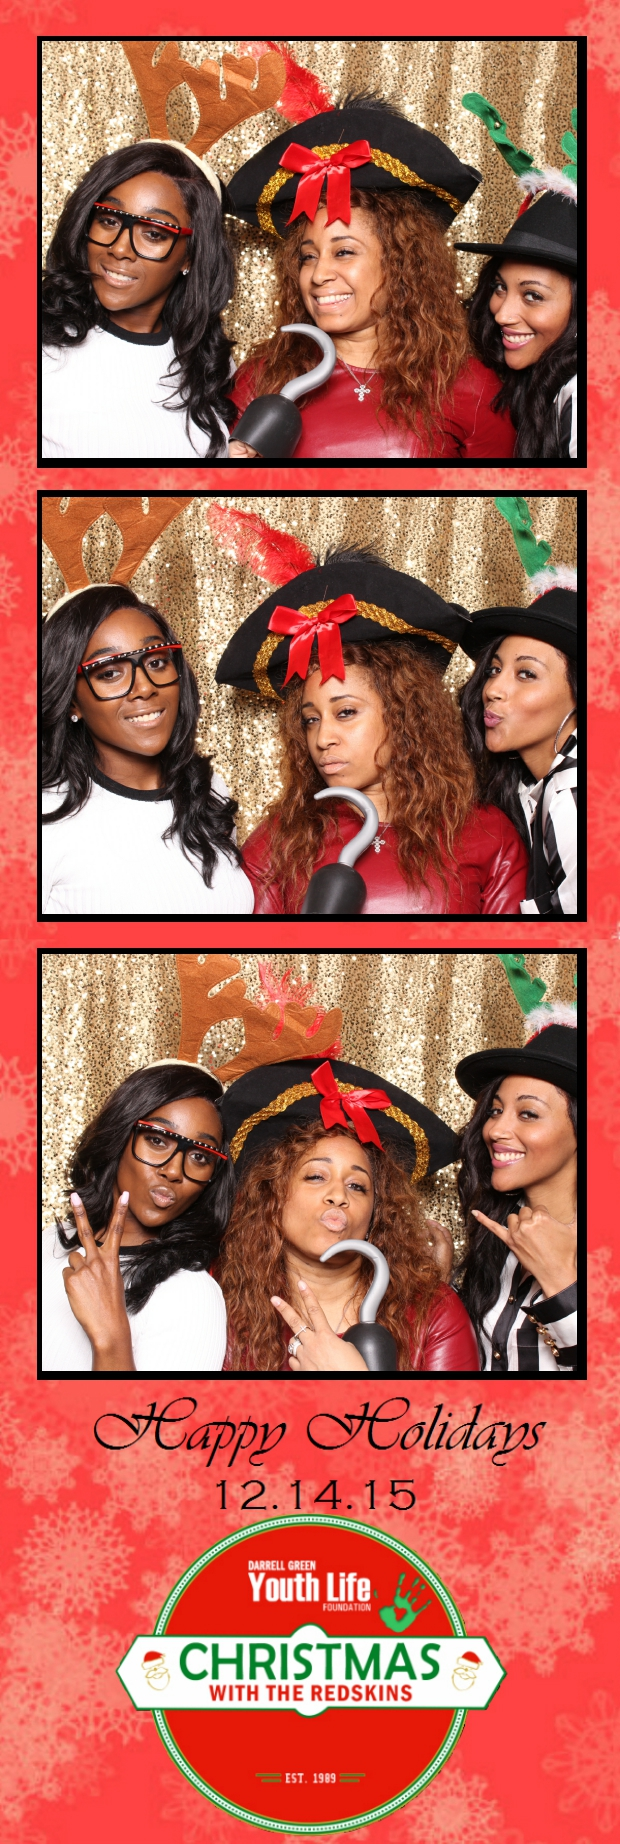 Guest House Events Photo Booth DGYLF Strips (66).jpg